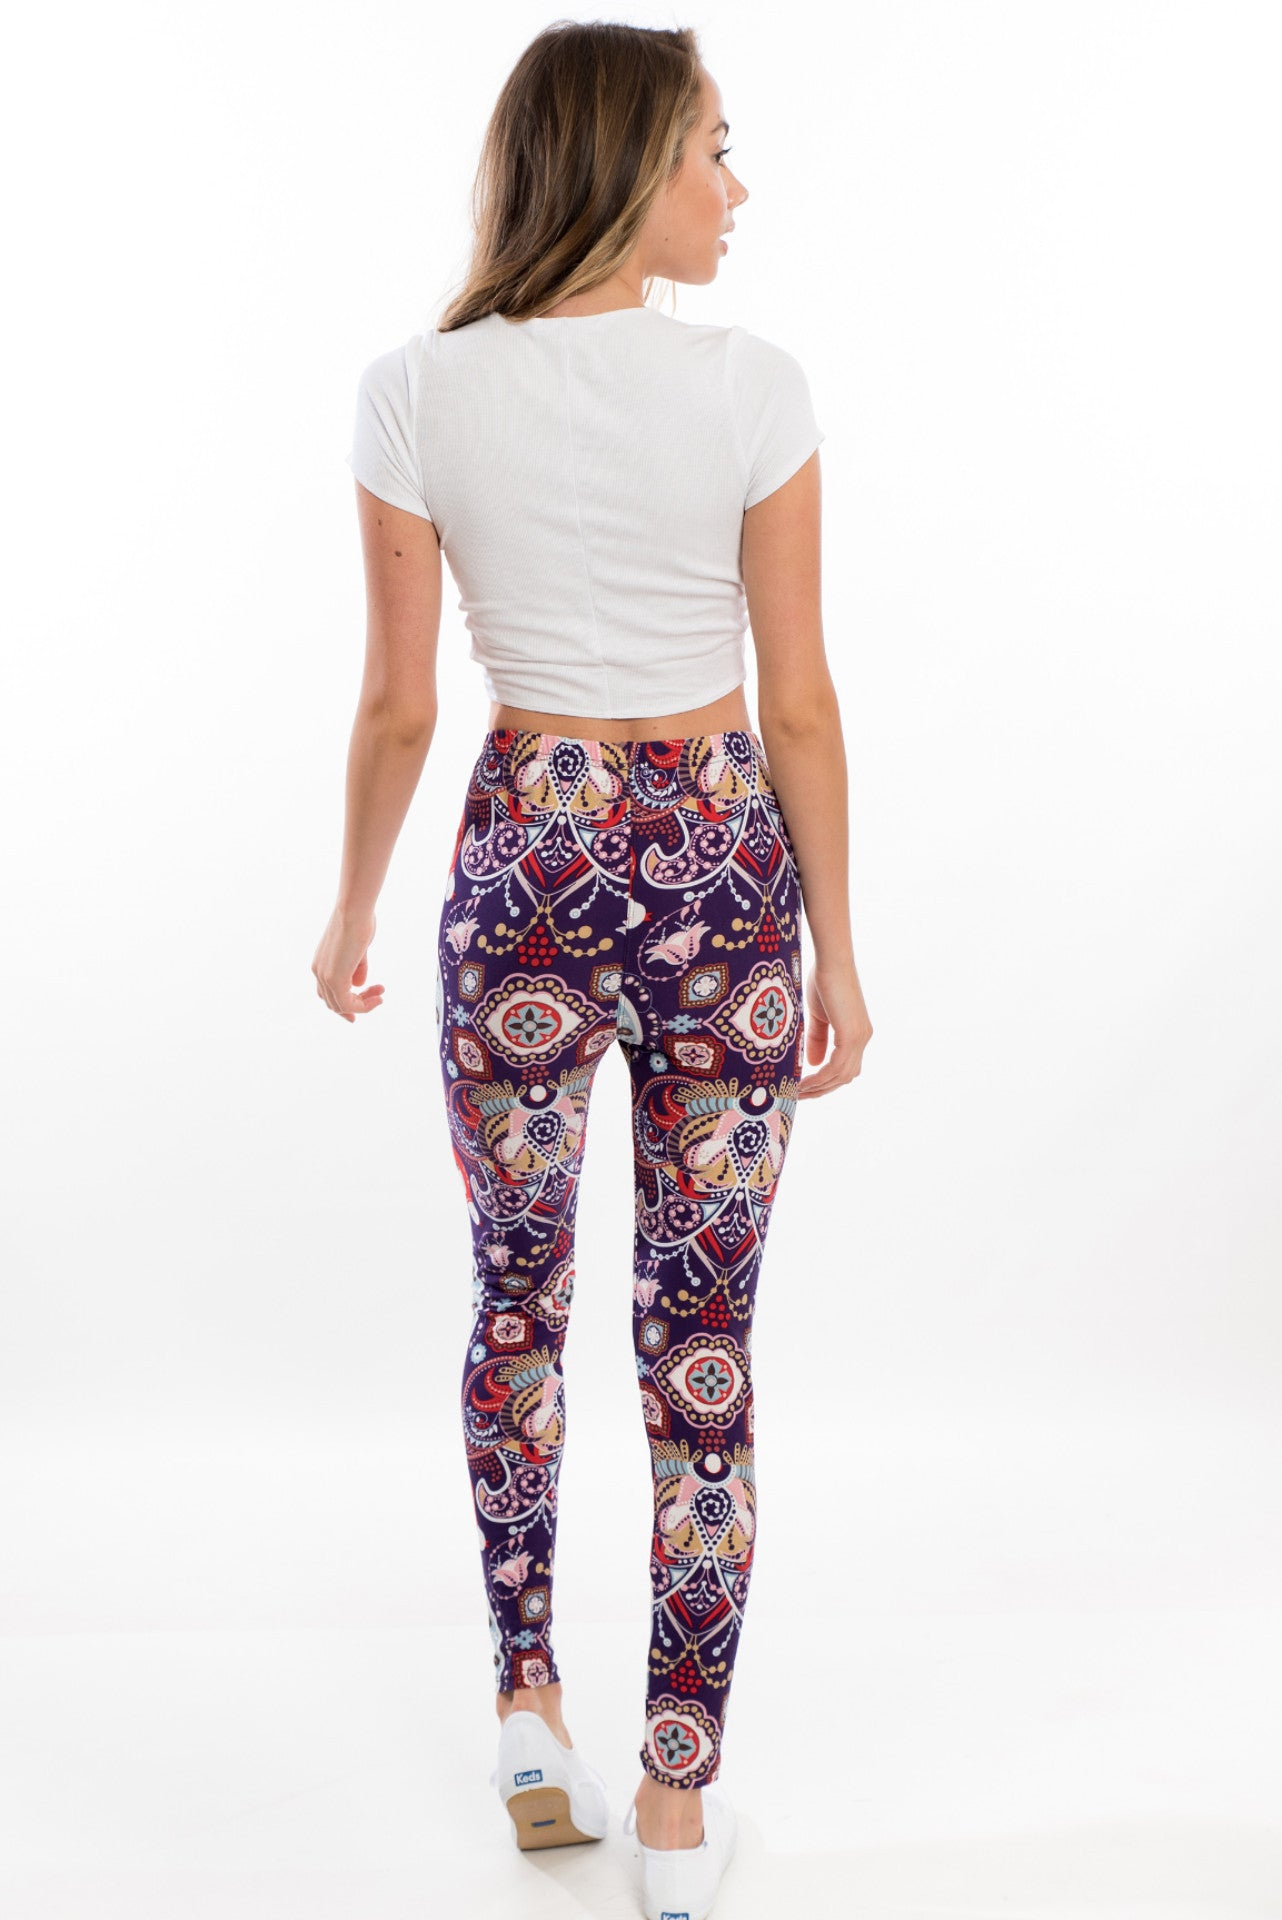 Booty Love Leggings - Purple Kaleidoscope